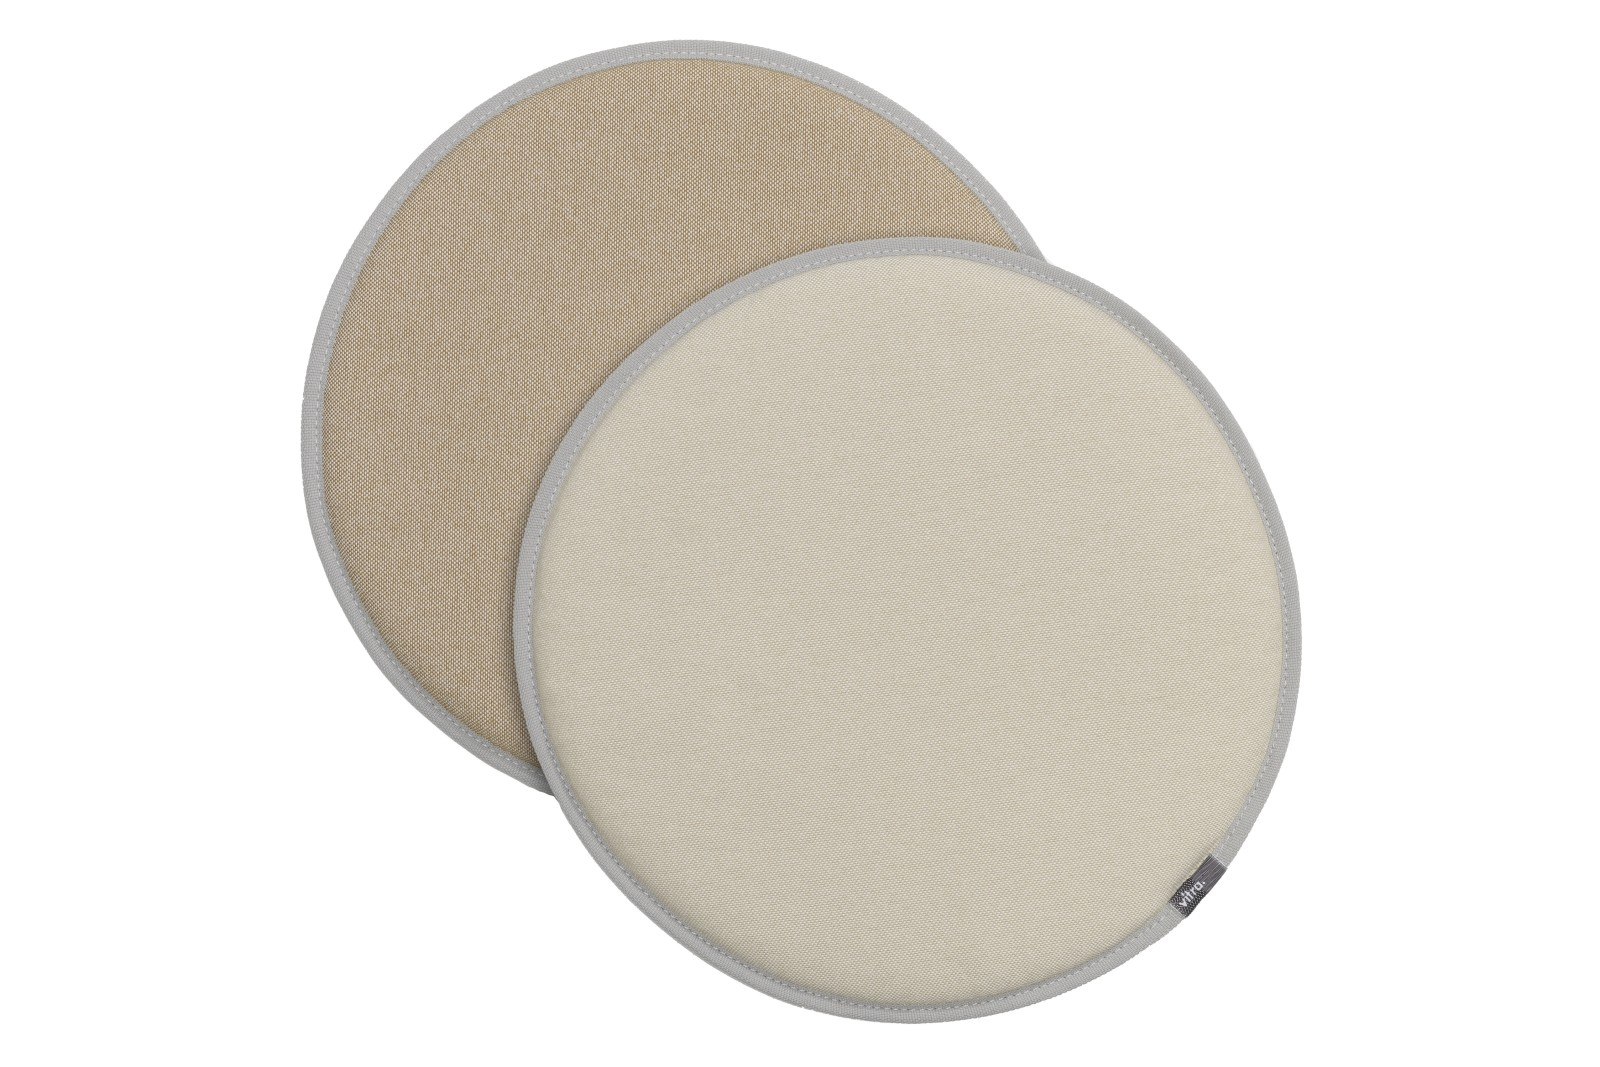 Seat Dots parchment/cream white - tobacco/cream white